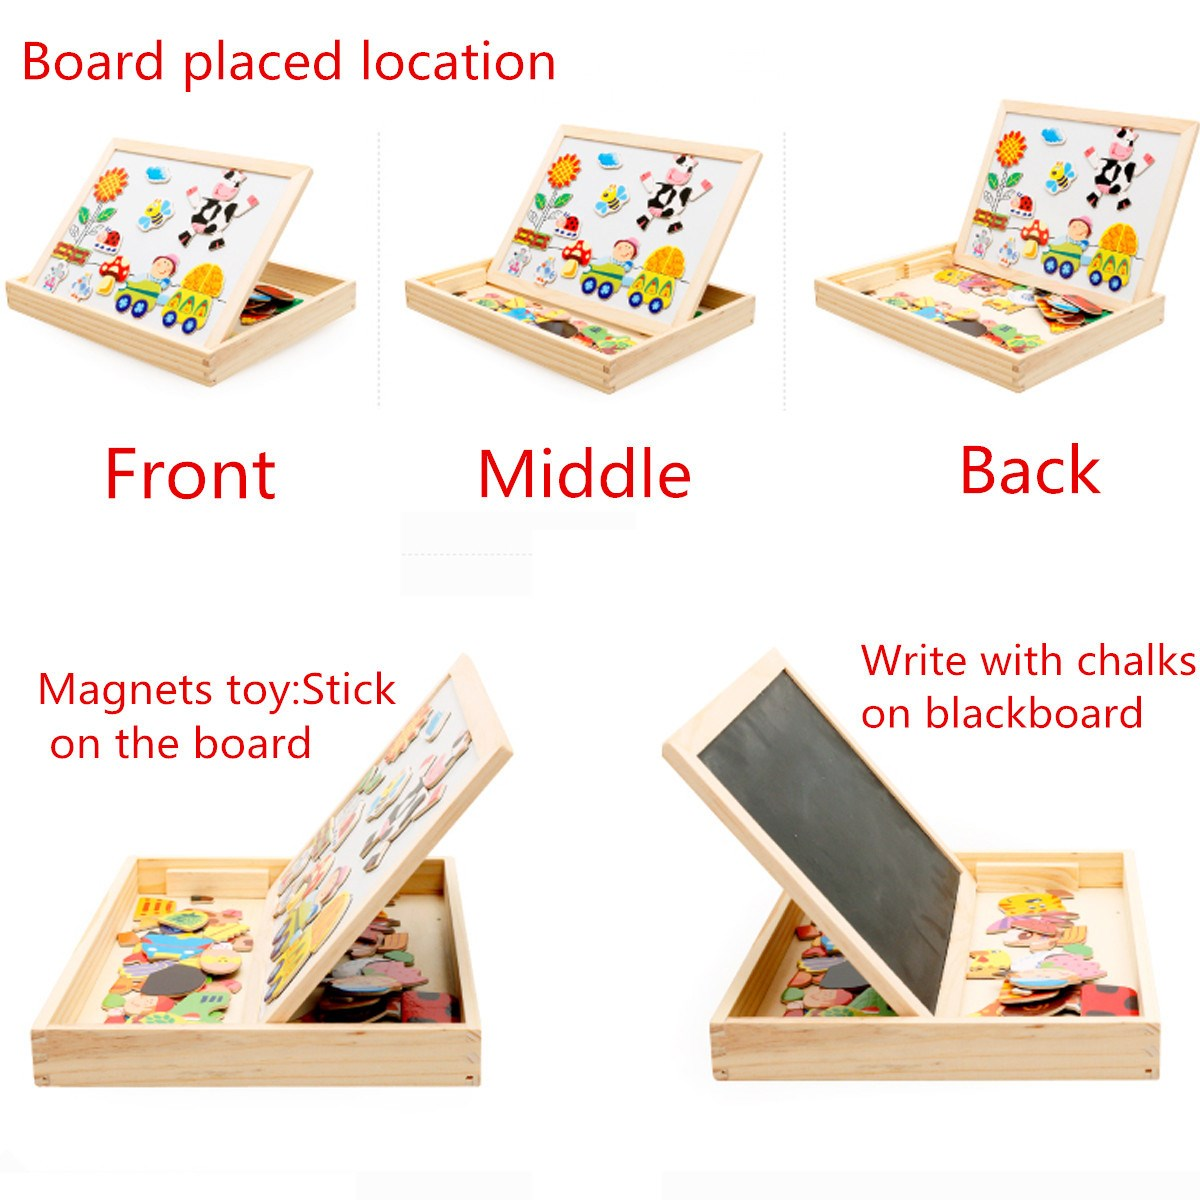 New-Arrival-Drawing-Writing-Board-Magnetic-Board-Puzzle-Double-Easel-Kid-Wooden-Toy-Gift-Children-Intelligence-Development-Toy-4